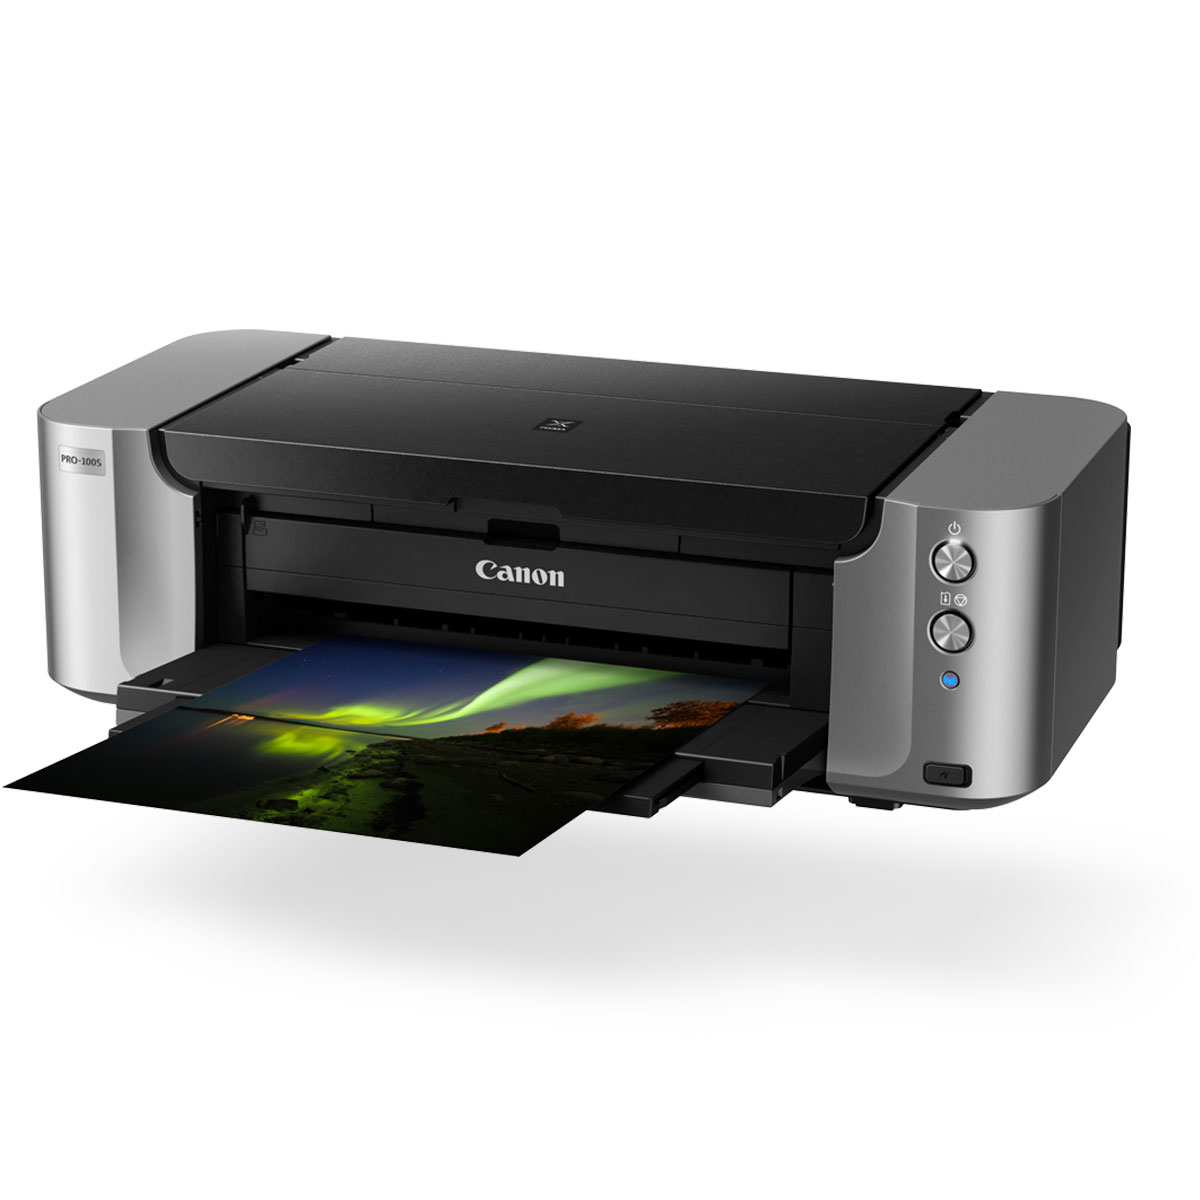 PIXMA PRO-100S black front angled with paper